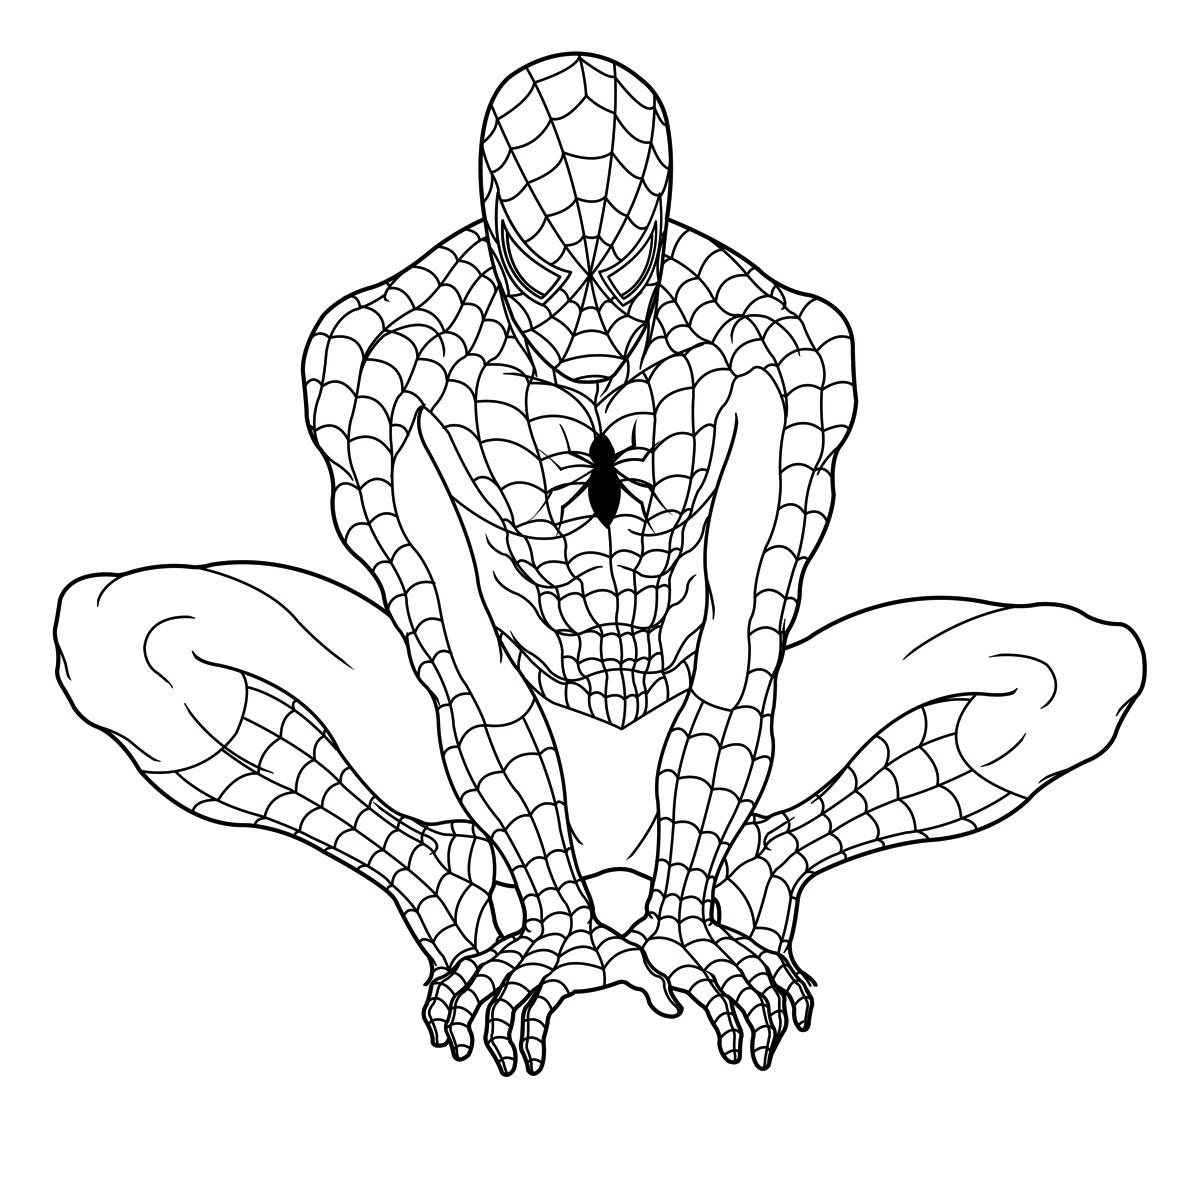 Disegni di spiderman fotogallery donnaclick for Disegni da colorare e stampare di spiderman